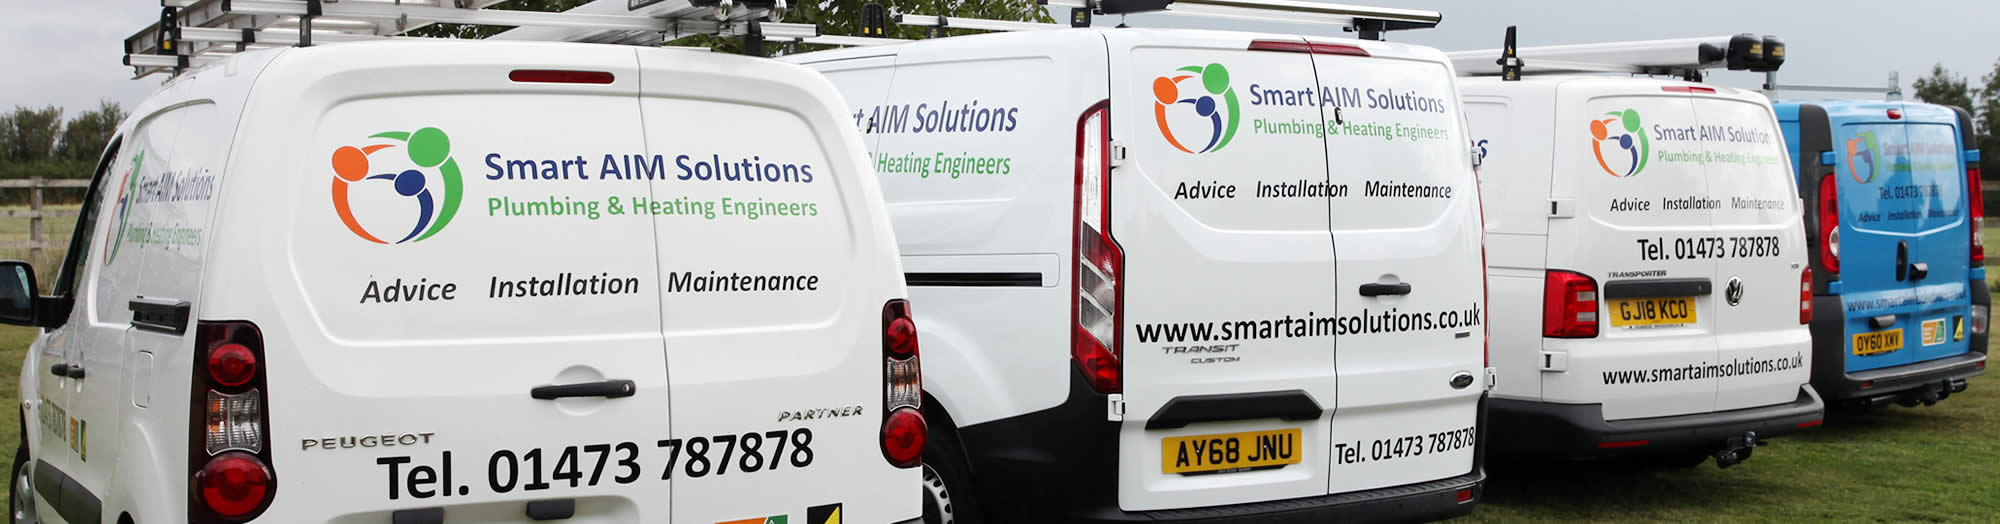 Smart AIM Solutions - Your plumbing, heating and bathroom professionals